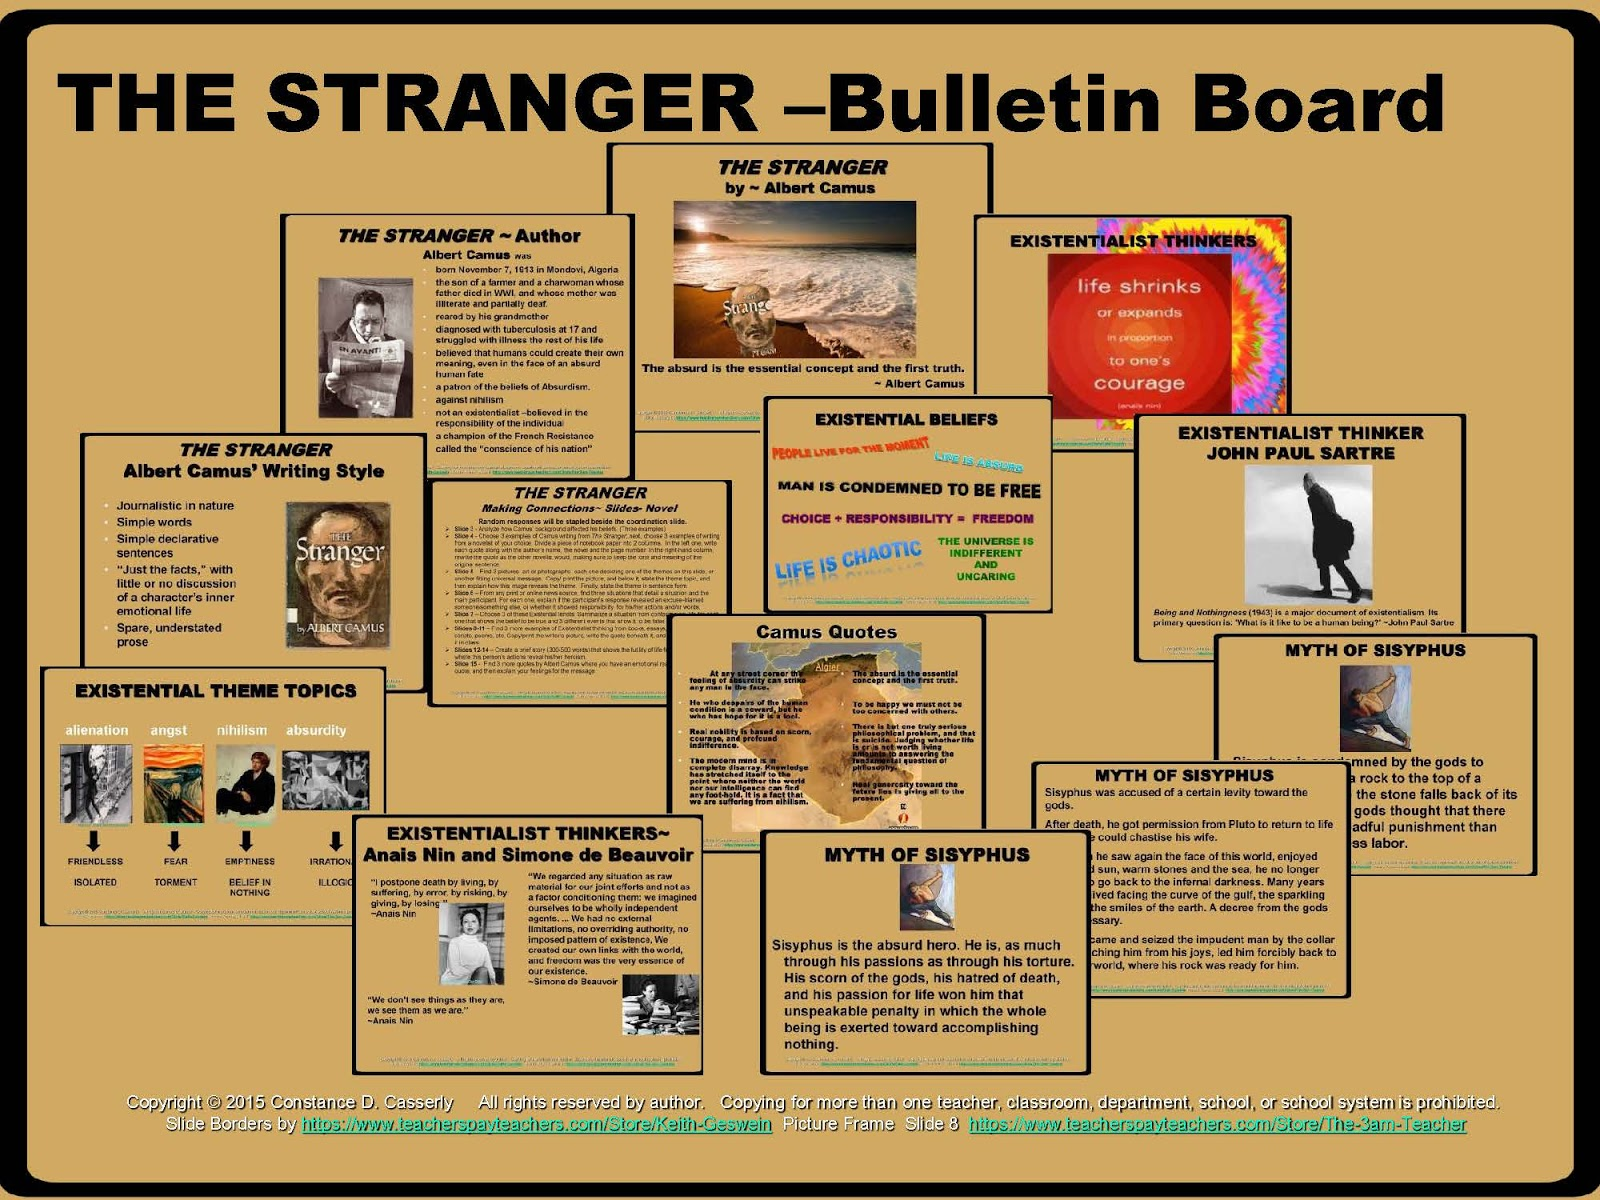 teach it write literature novel ideas albert camus the stranger bulletin board